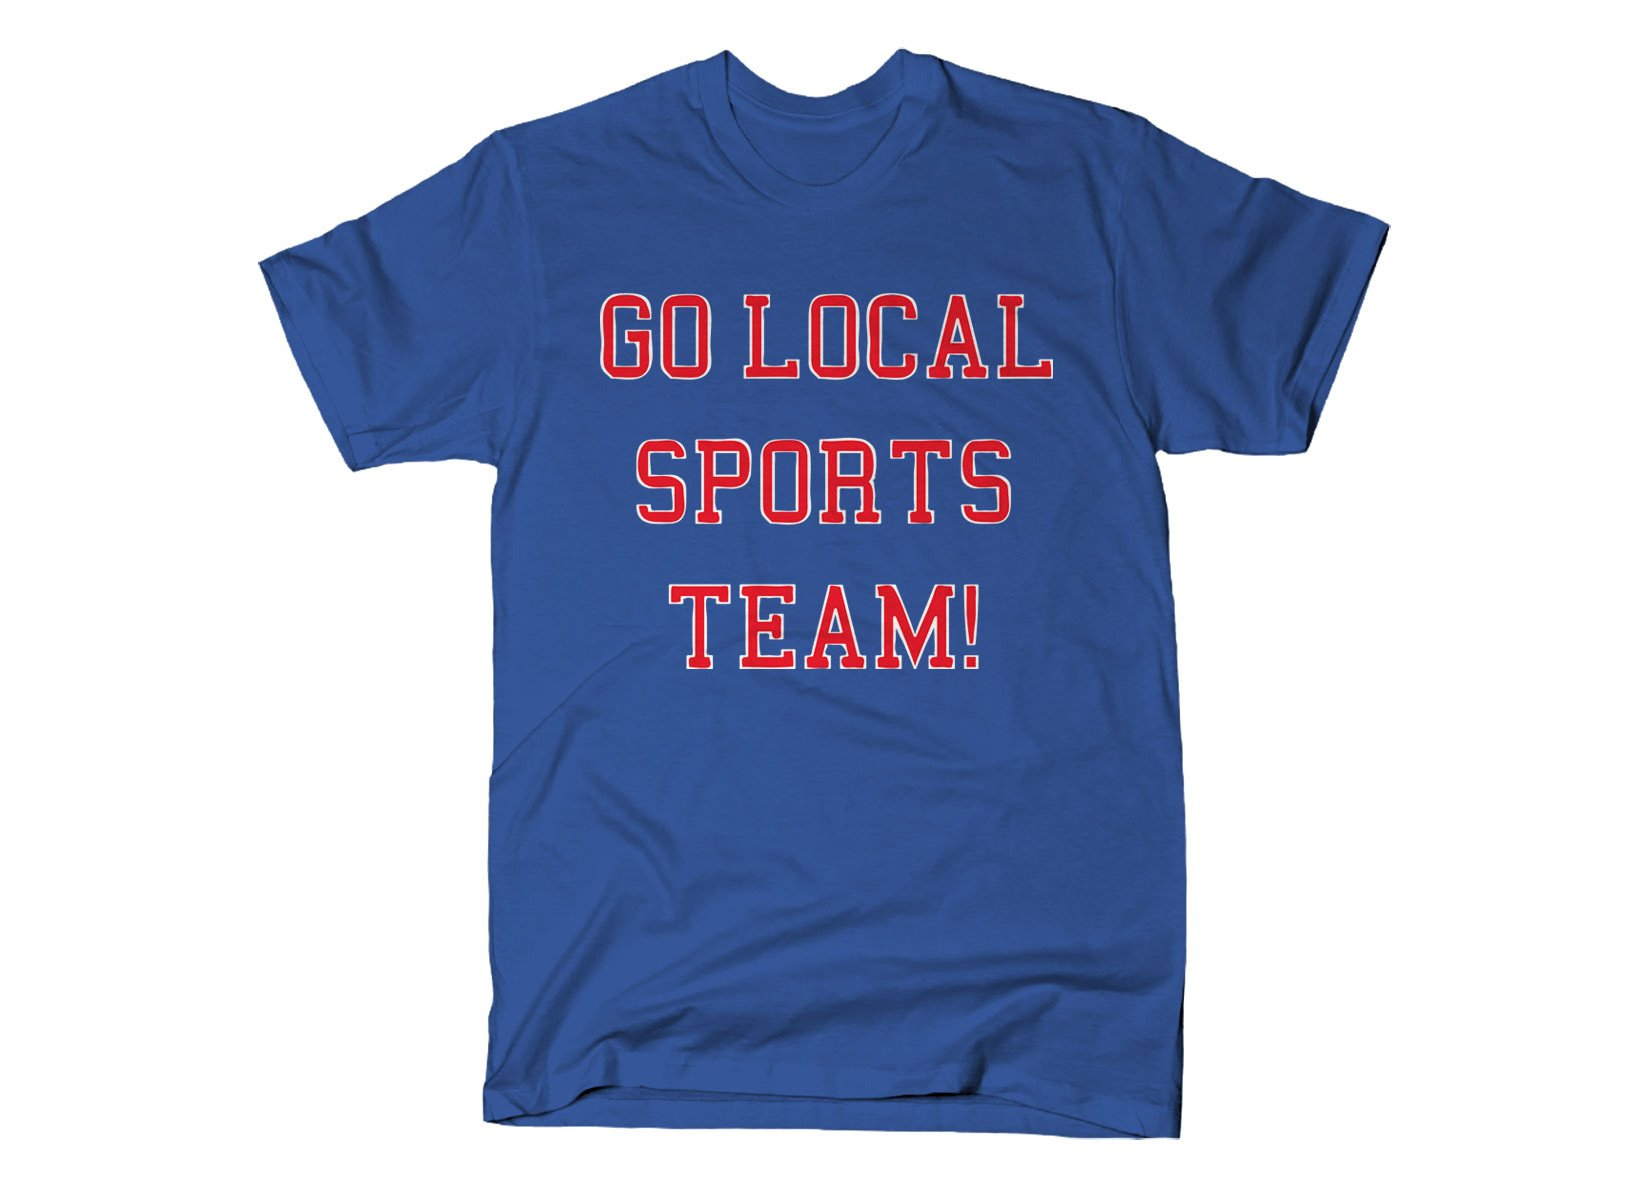 Go Local Sports Team! on Mens T-Shirt